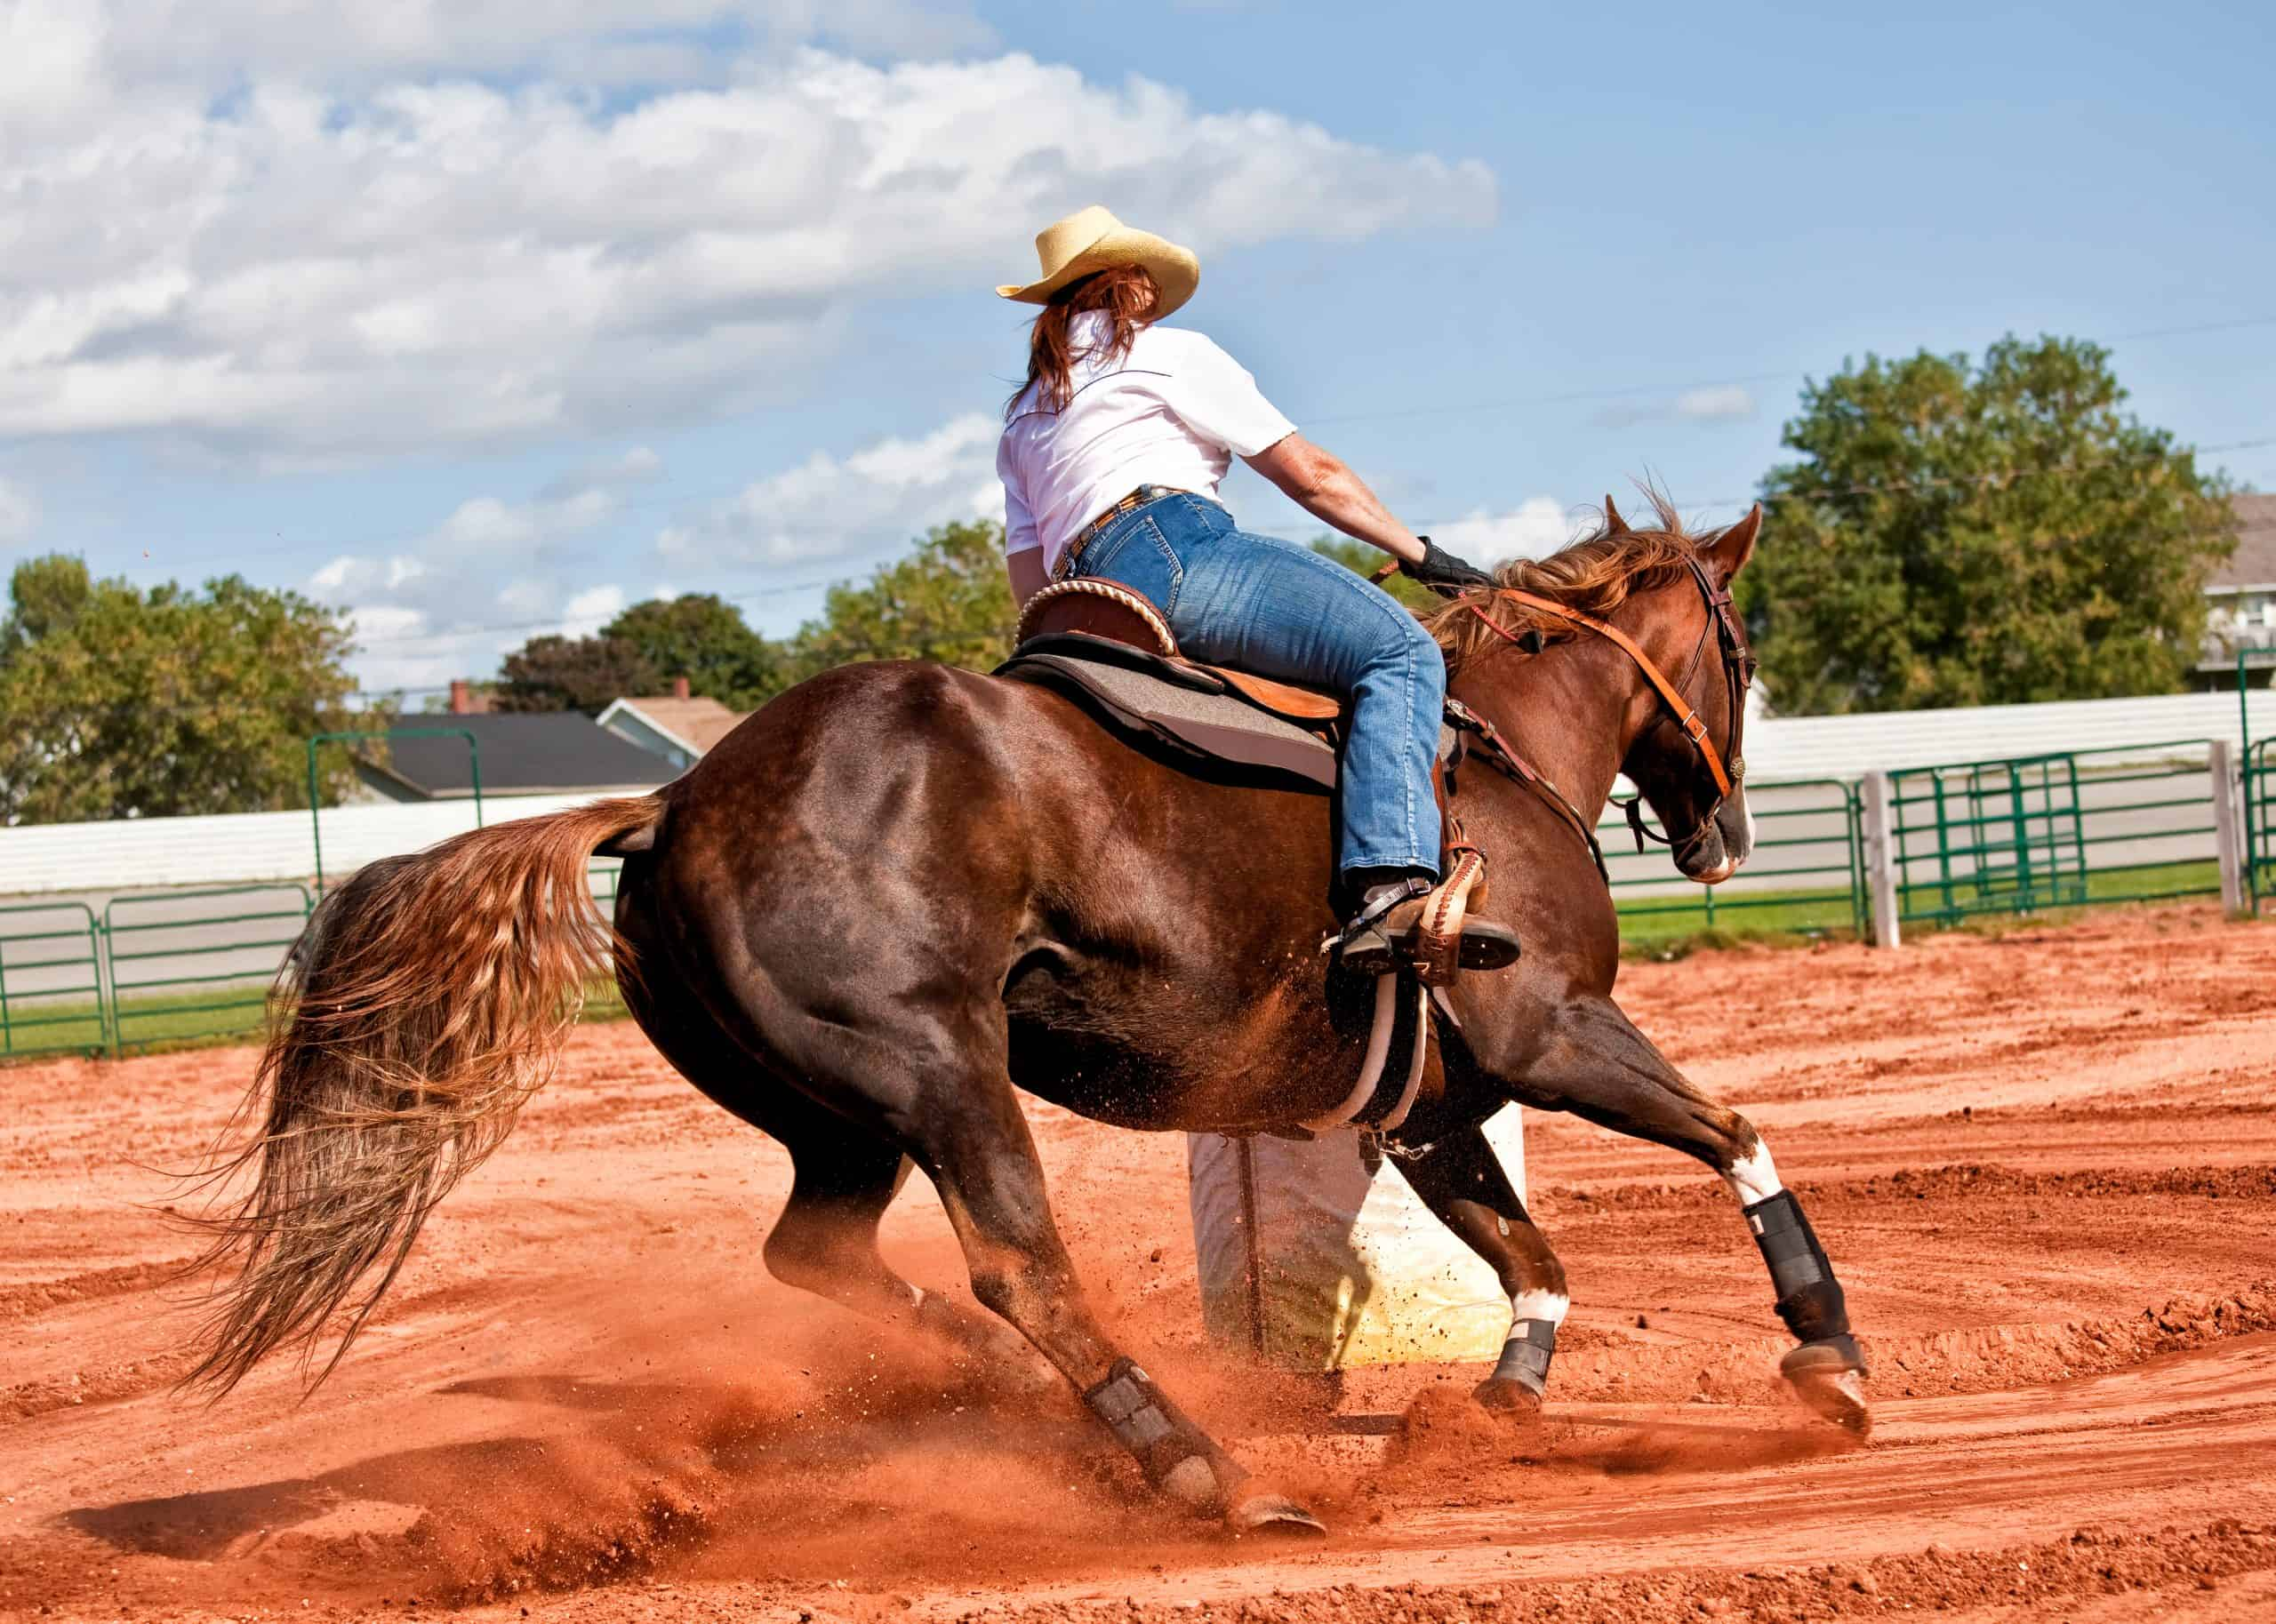 Western horse and rider competing in pole bending and barrel racing competition.